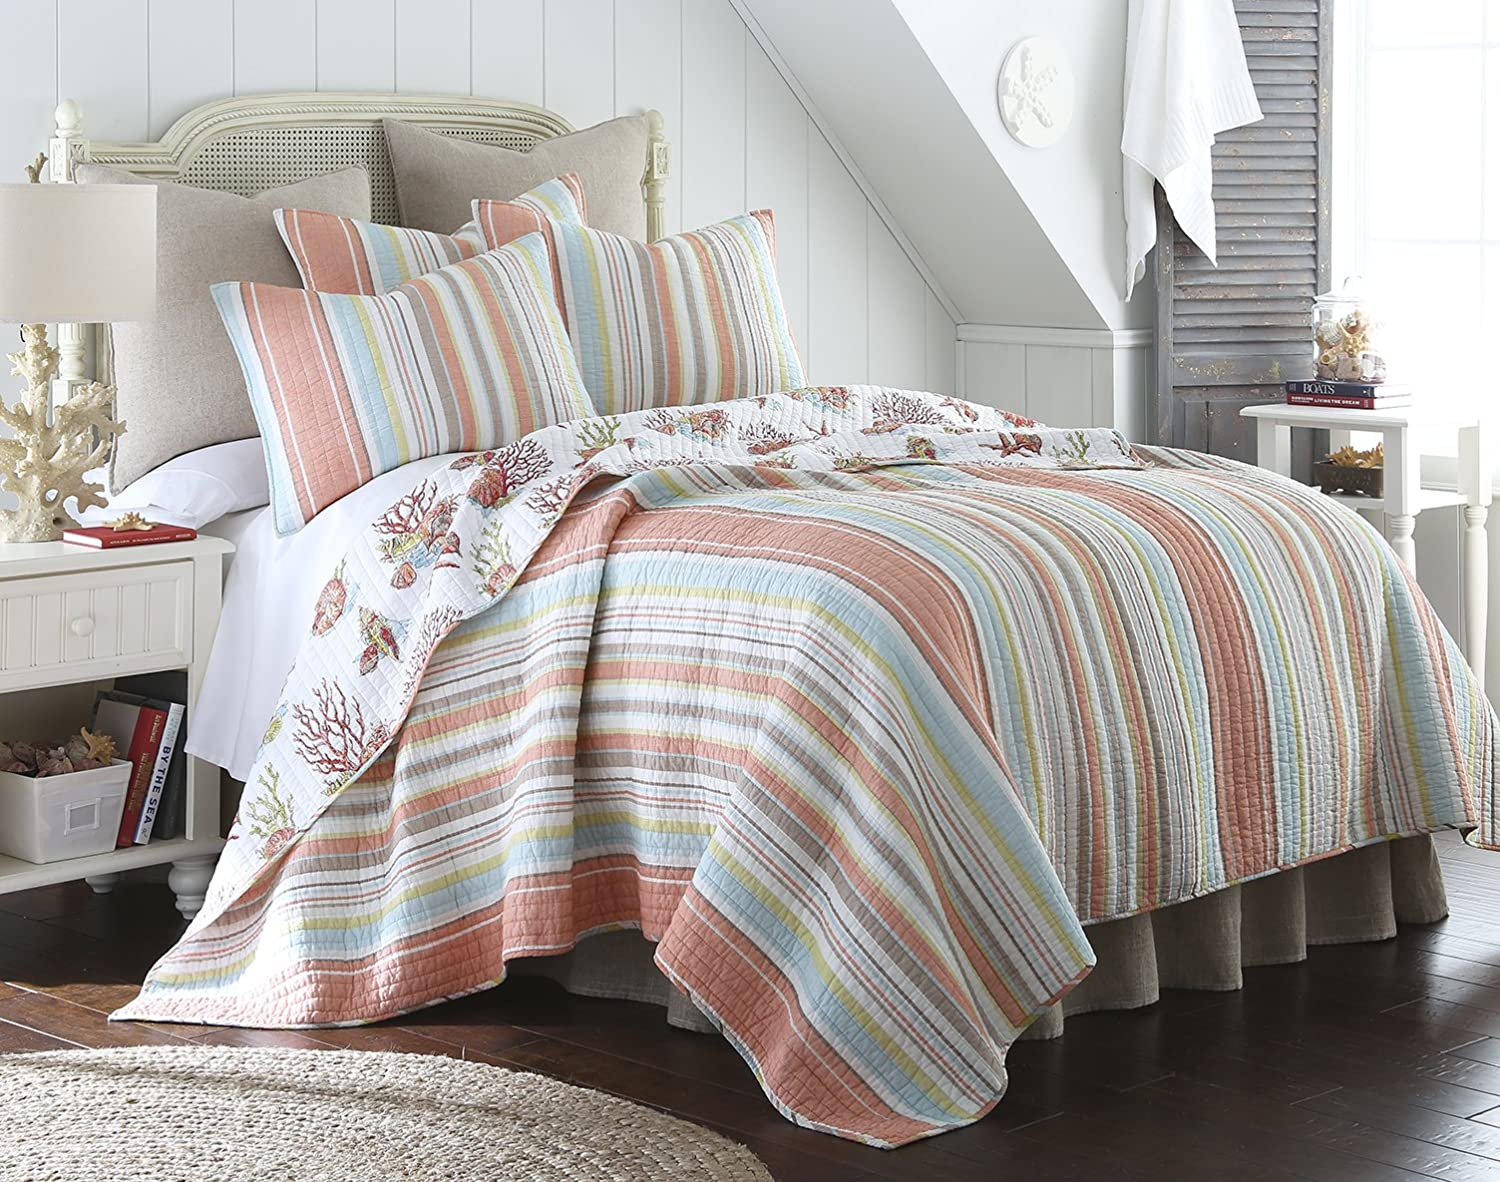 Amazon.com: Brighton Coral Full/Queen Cotton Quilt Set Stripe ... : coral quilt queen - Adamdwight.com